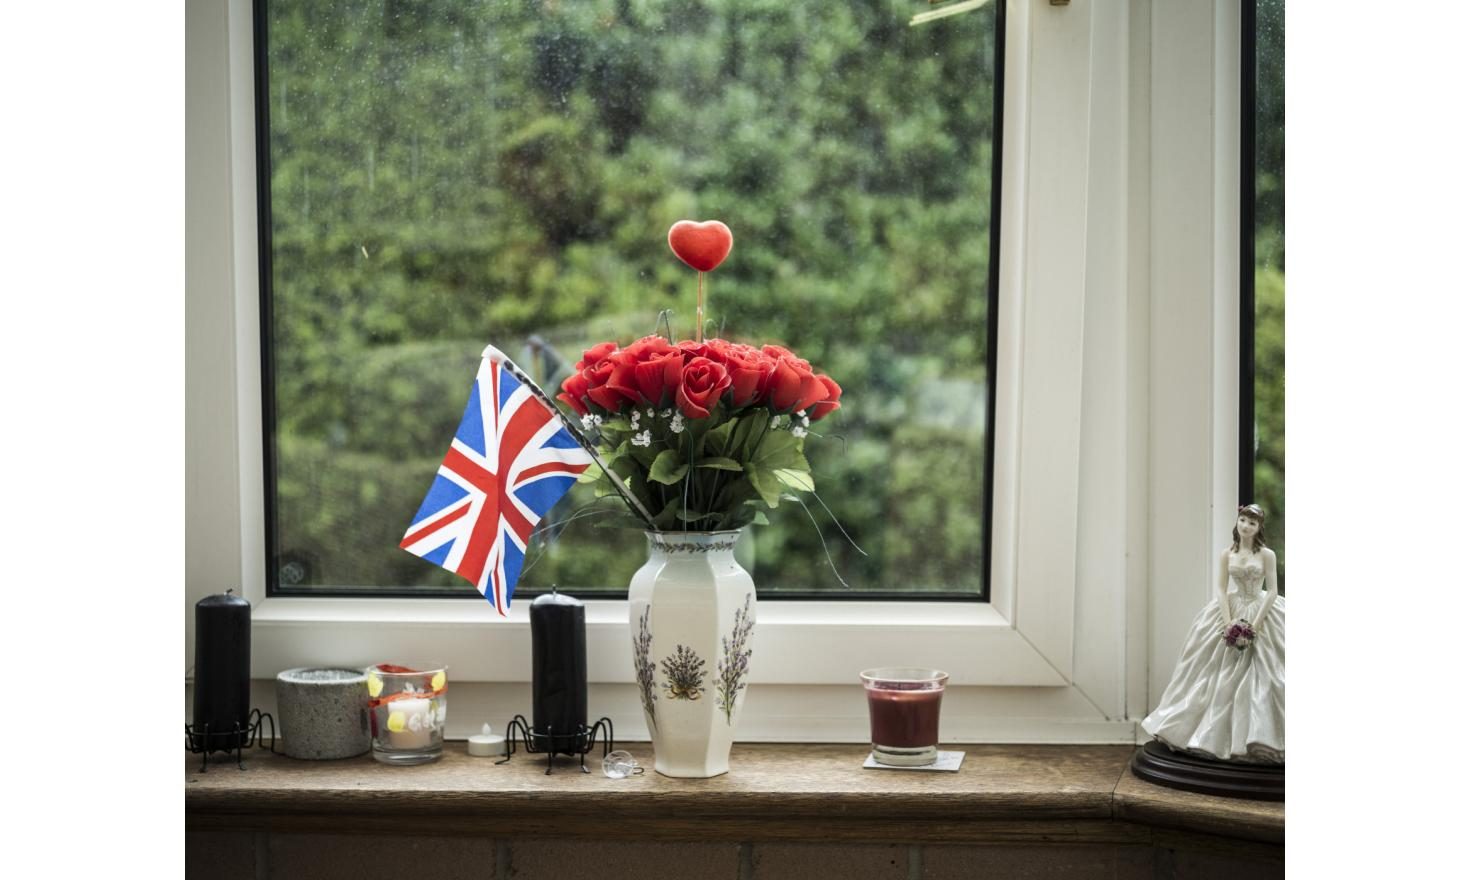 A bunch of roses, with a british flag and a love heart, in the sitting room of Ashley Greenup (56). Greenup is a fervent supporter of UKIP, living in Carlise. He voted to leave the EU in the British Referendum on EU membership.